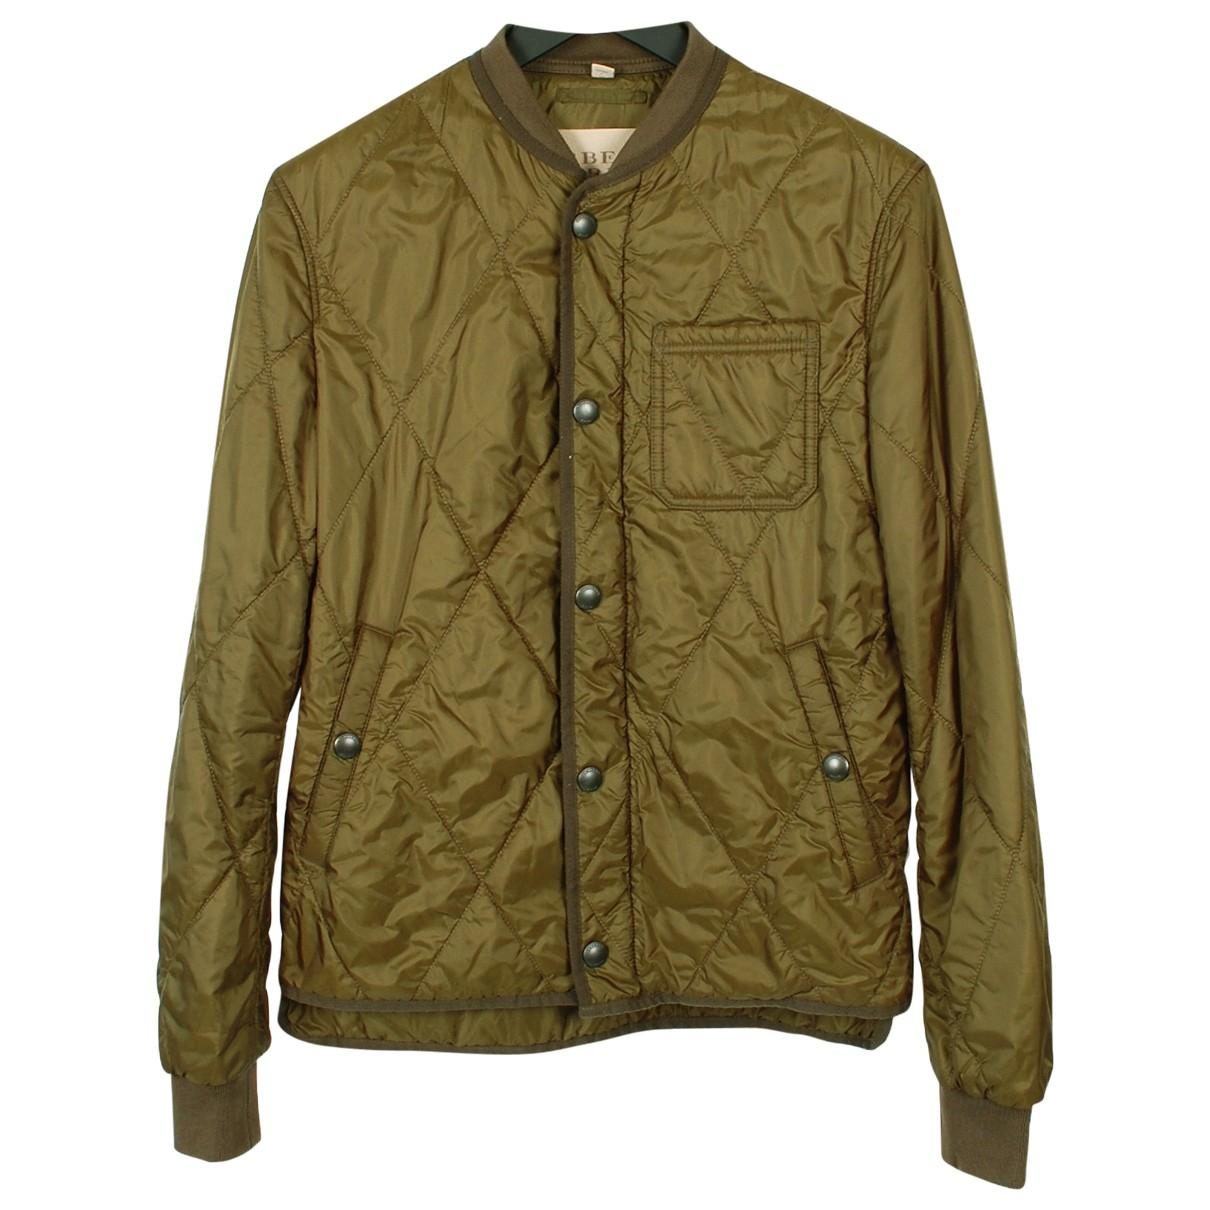 f7977953167f Burberry. Men s Green Pre-owned Jacket. £264 From Vestiaire Collective ...